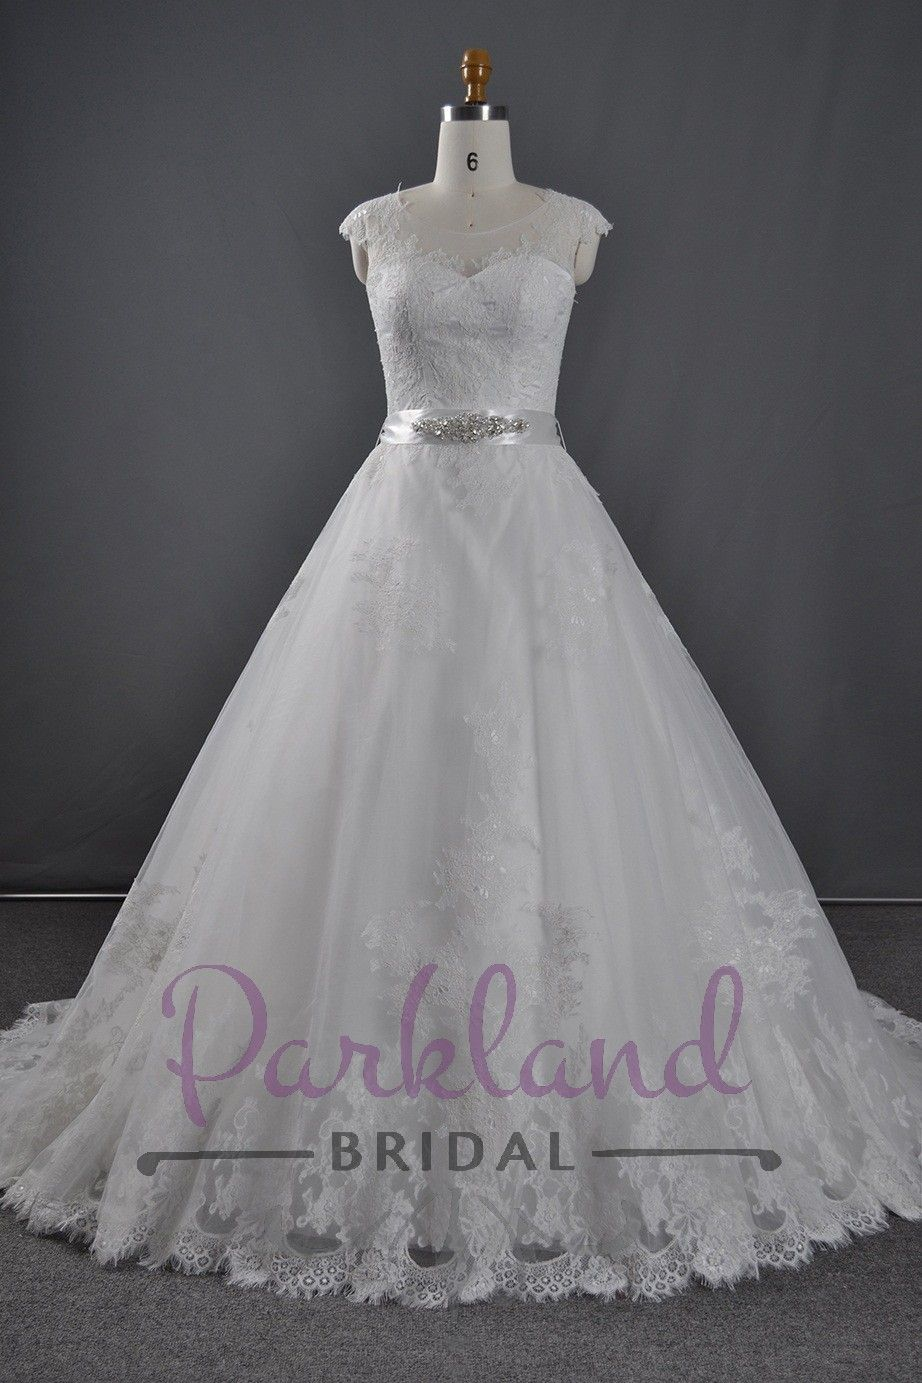 A beautiful Tulle A-line gown embellished with gorgeous lace with a sheer neckline. Features a stunning luxury beaded sash at the waist.  http://www.parklandbridal.co.nz/Store/tabid/4393/ProdID/34768/CatID/358/Parkland_Bridal_Adine.aspx